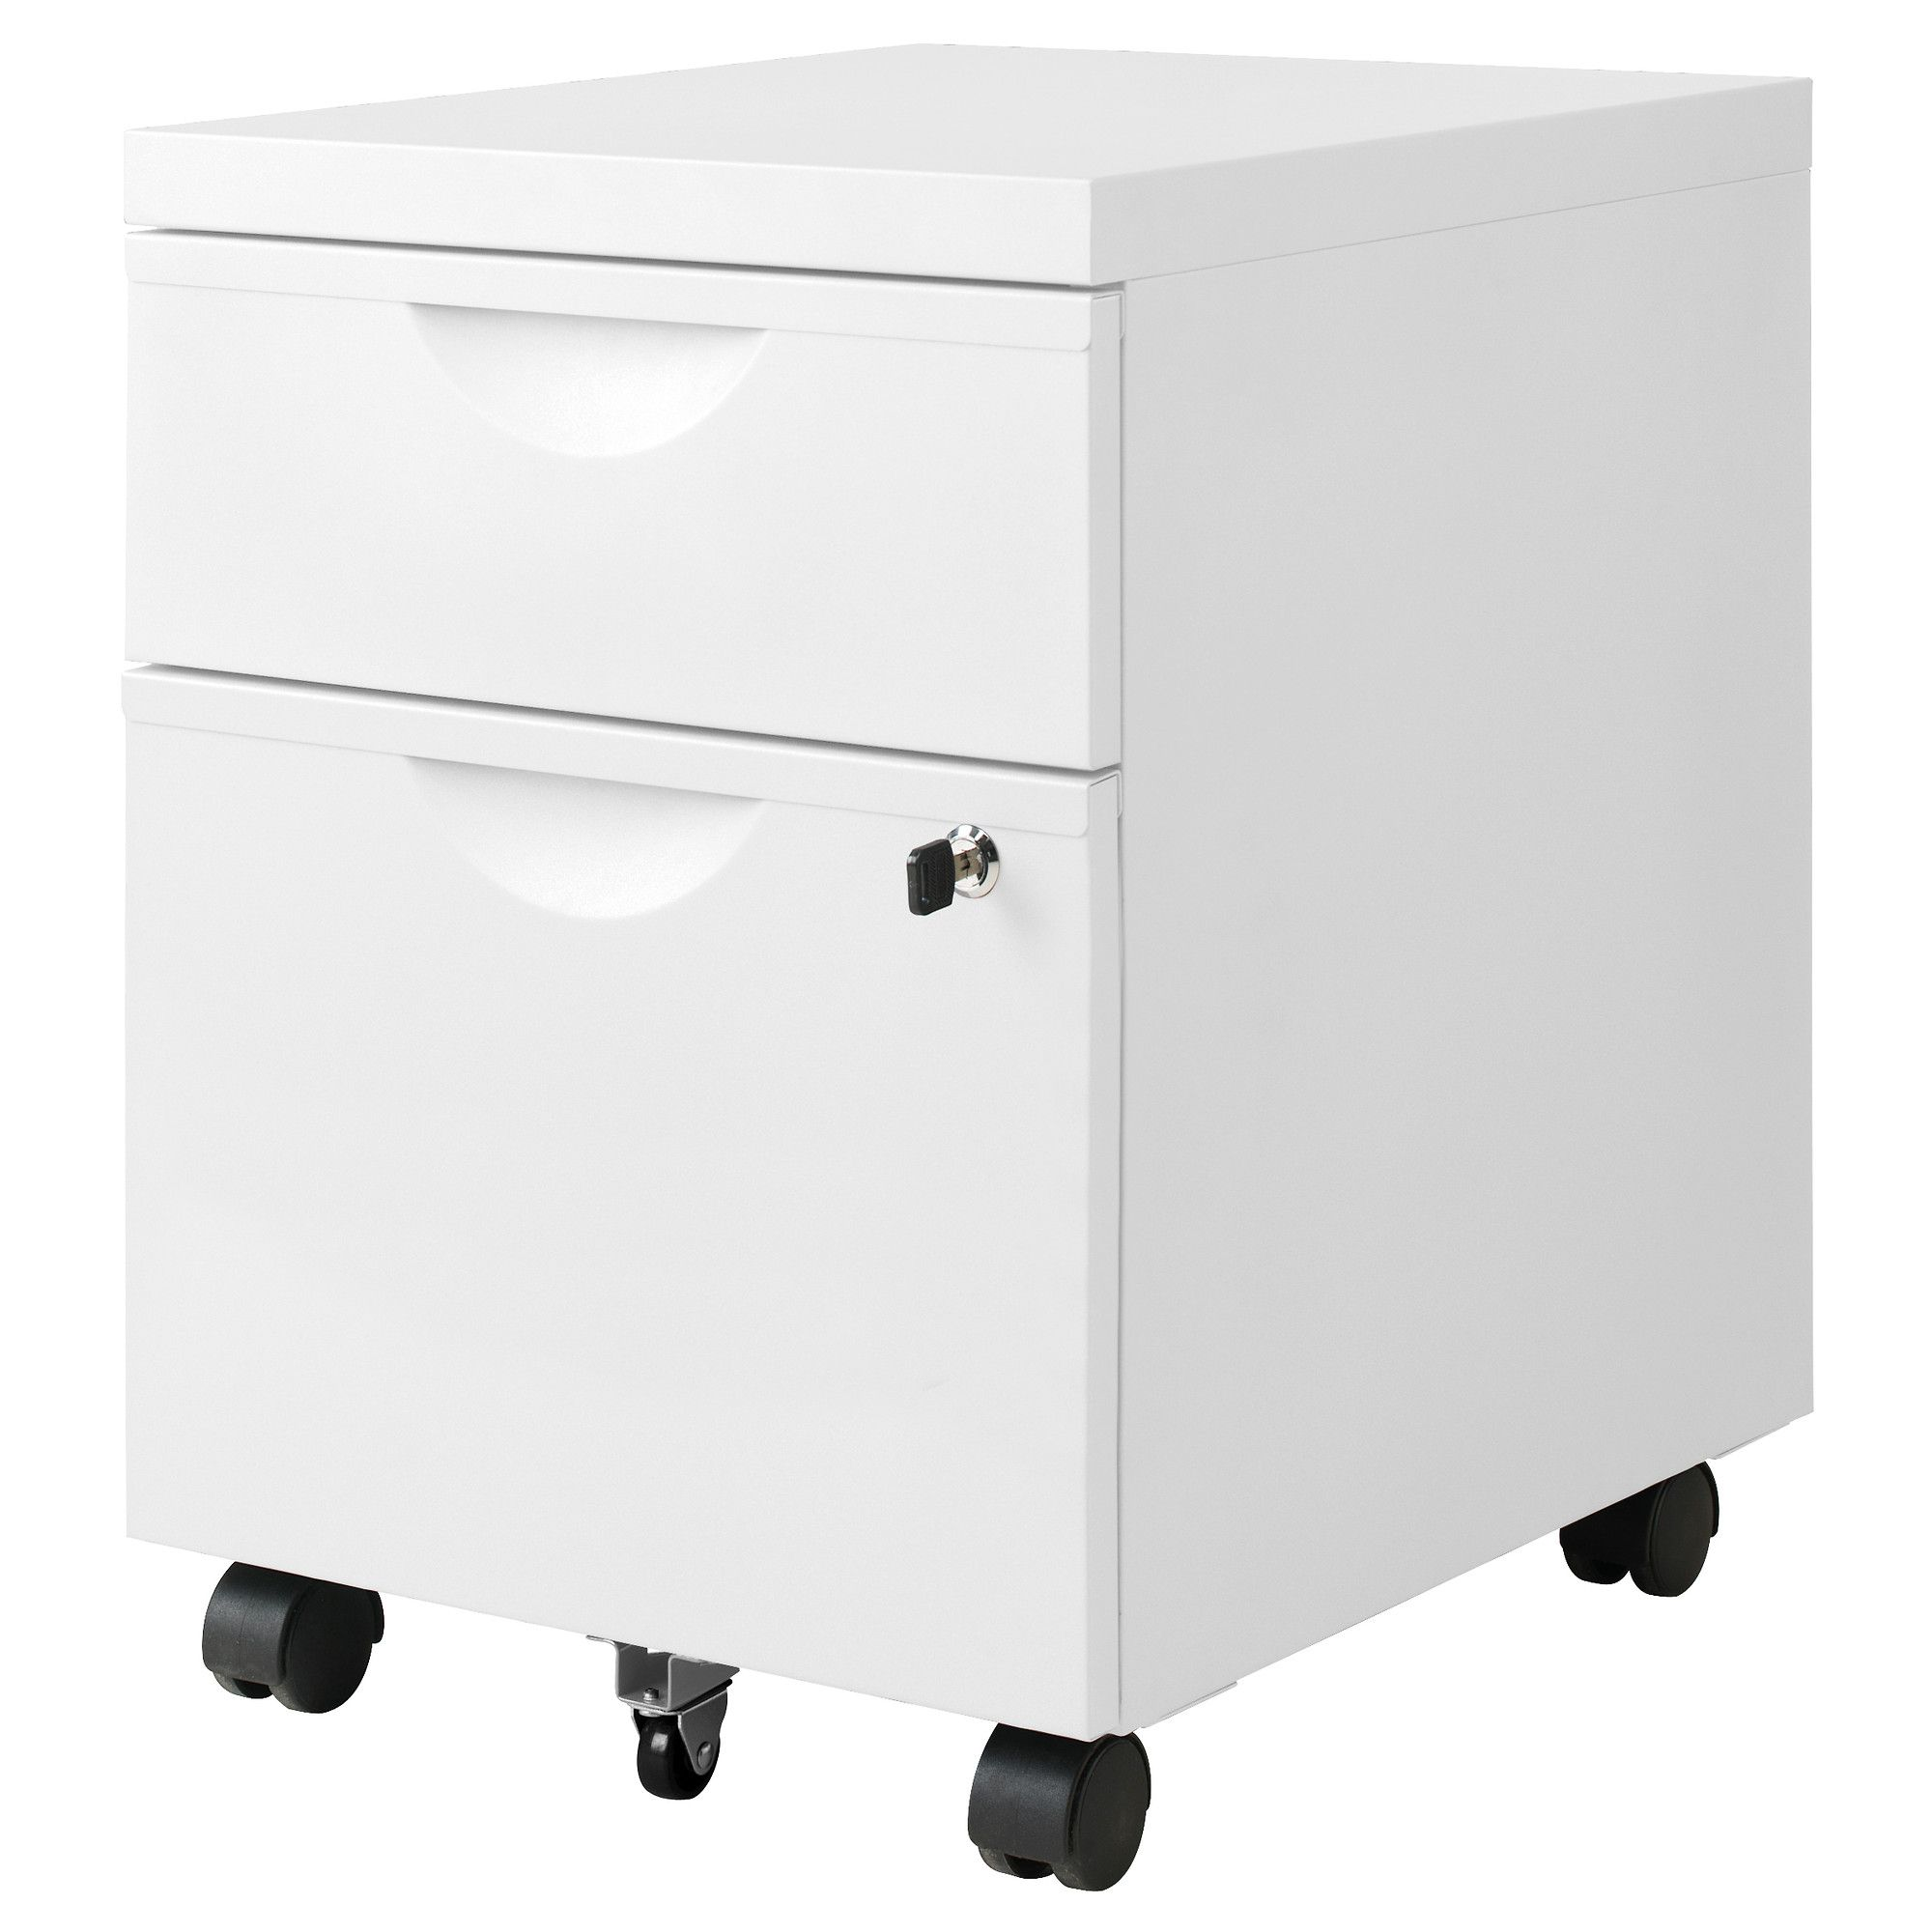 ERIK Drawer unit w 2 drawers on casters white